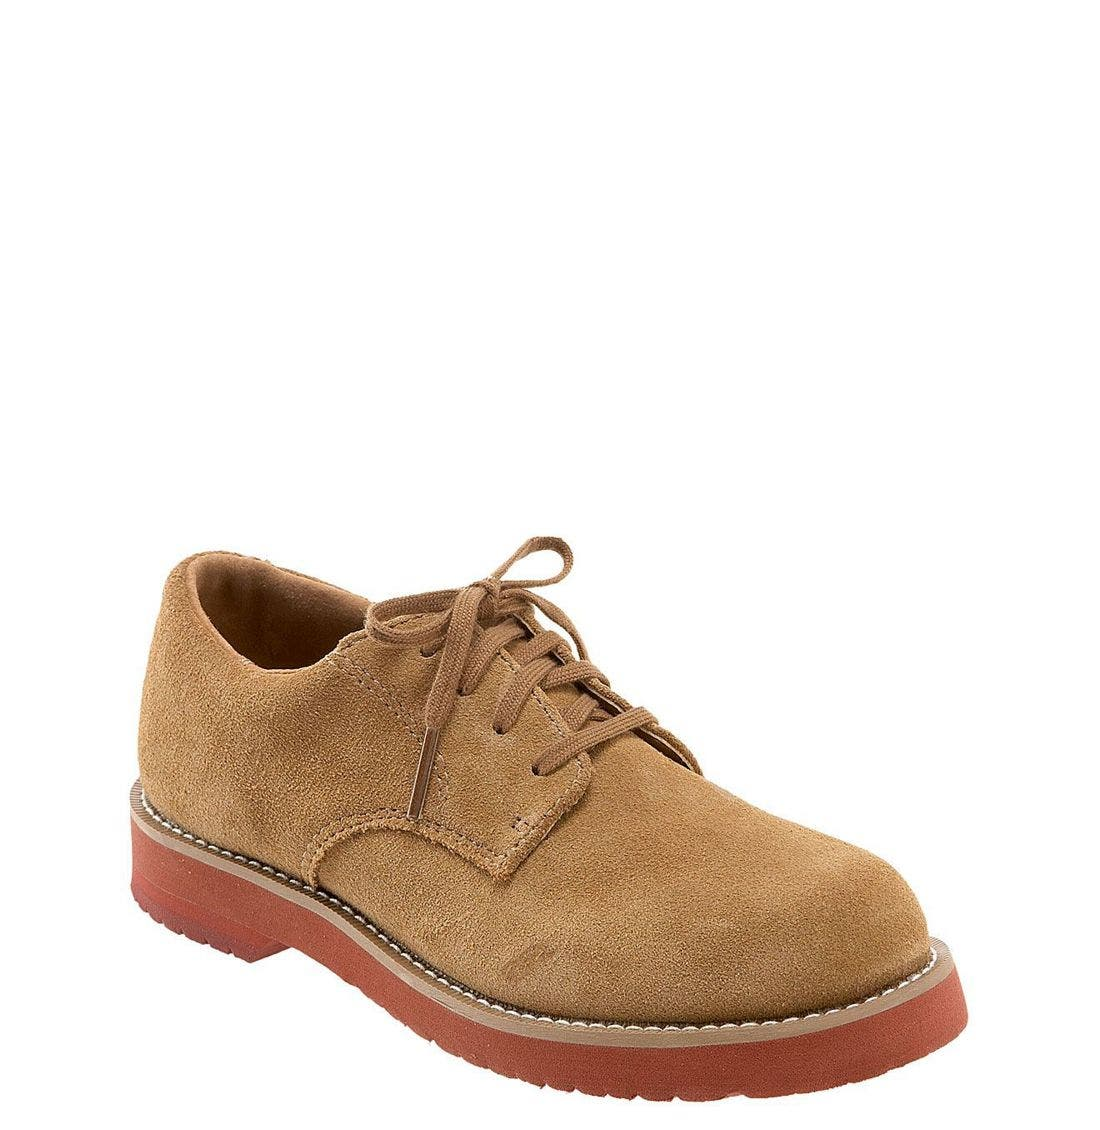 Sperry Kids 'Tevin' Oxford (Walker, Toddler, Little Kid & Big Kid)